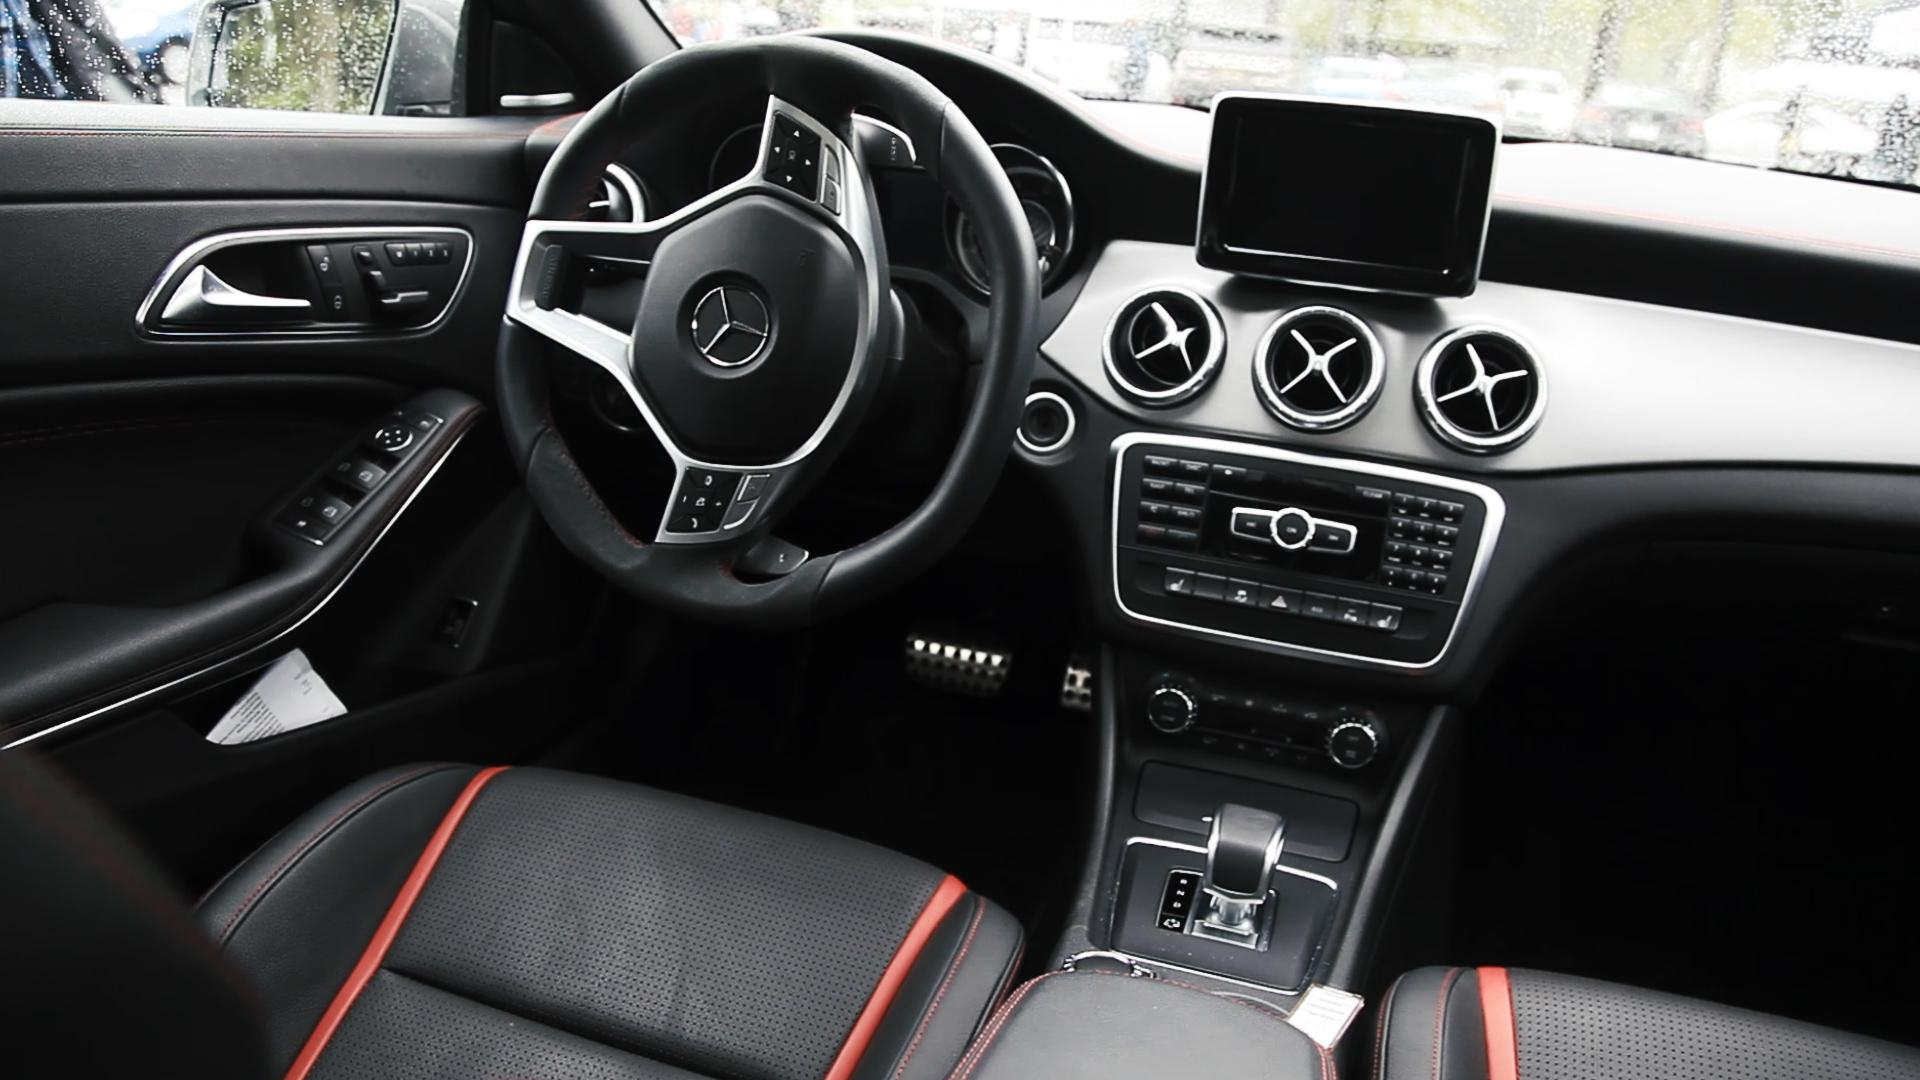 cla 45 amg manual transmission